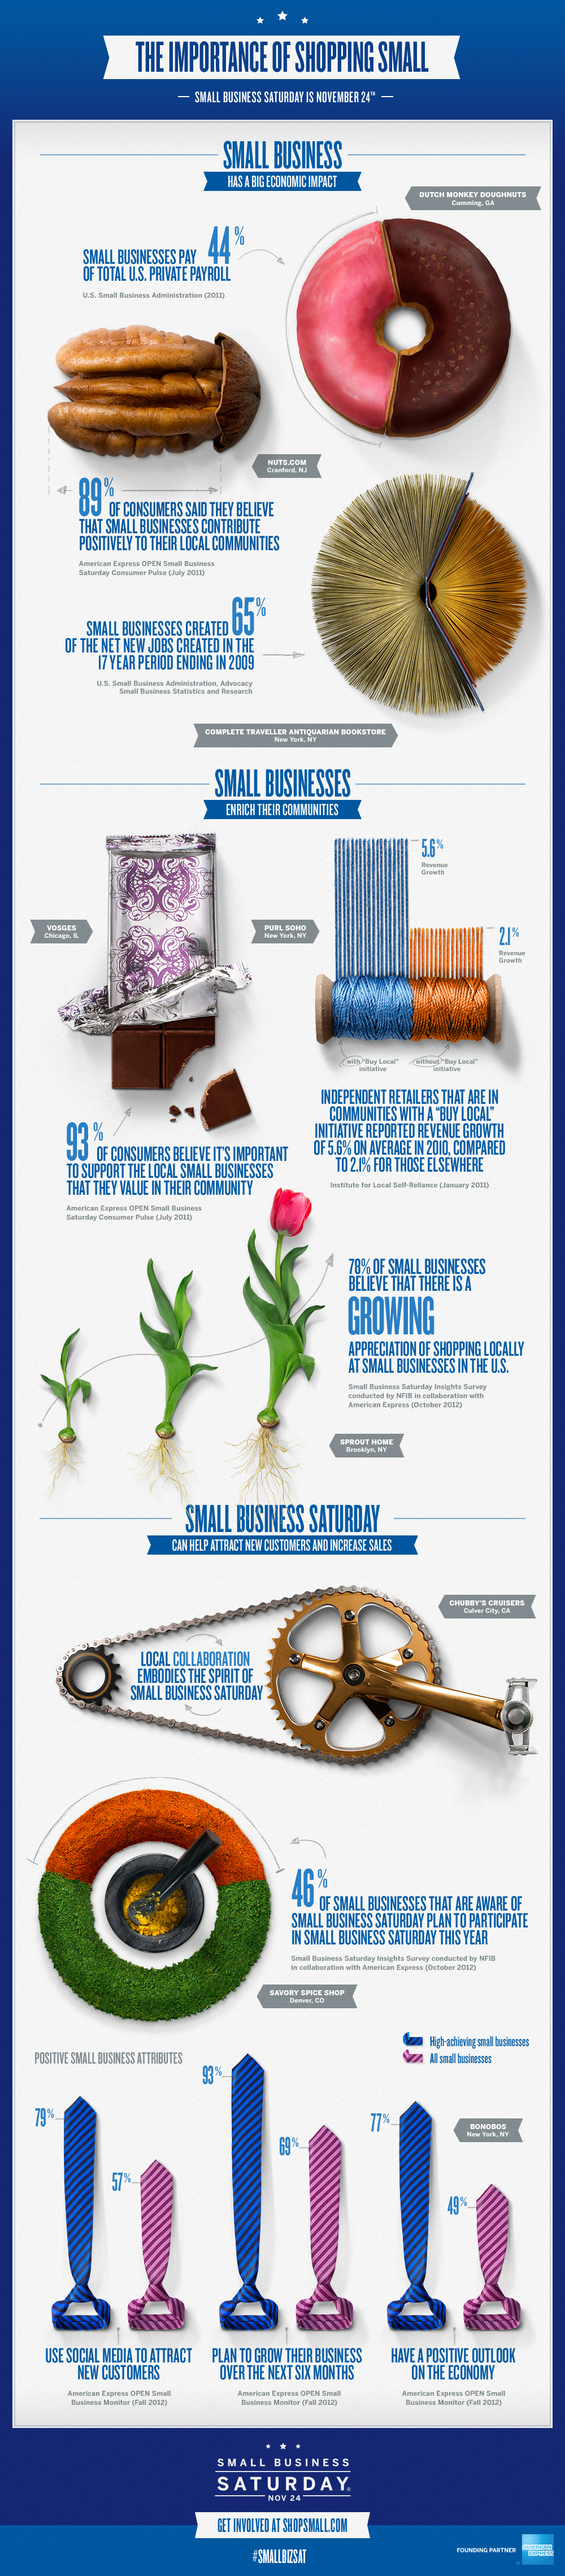 Small Business Saturday [Infographic] | ecogreenlove